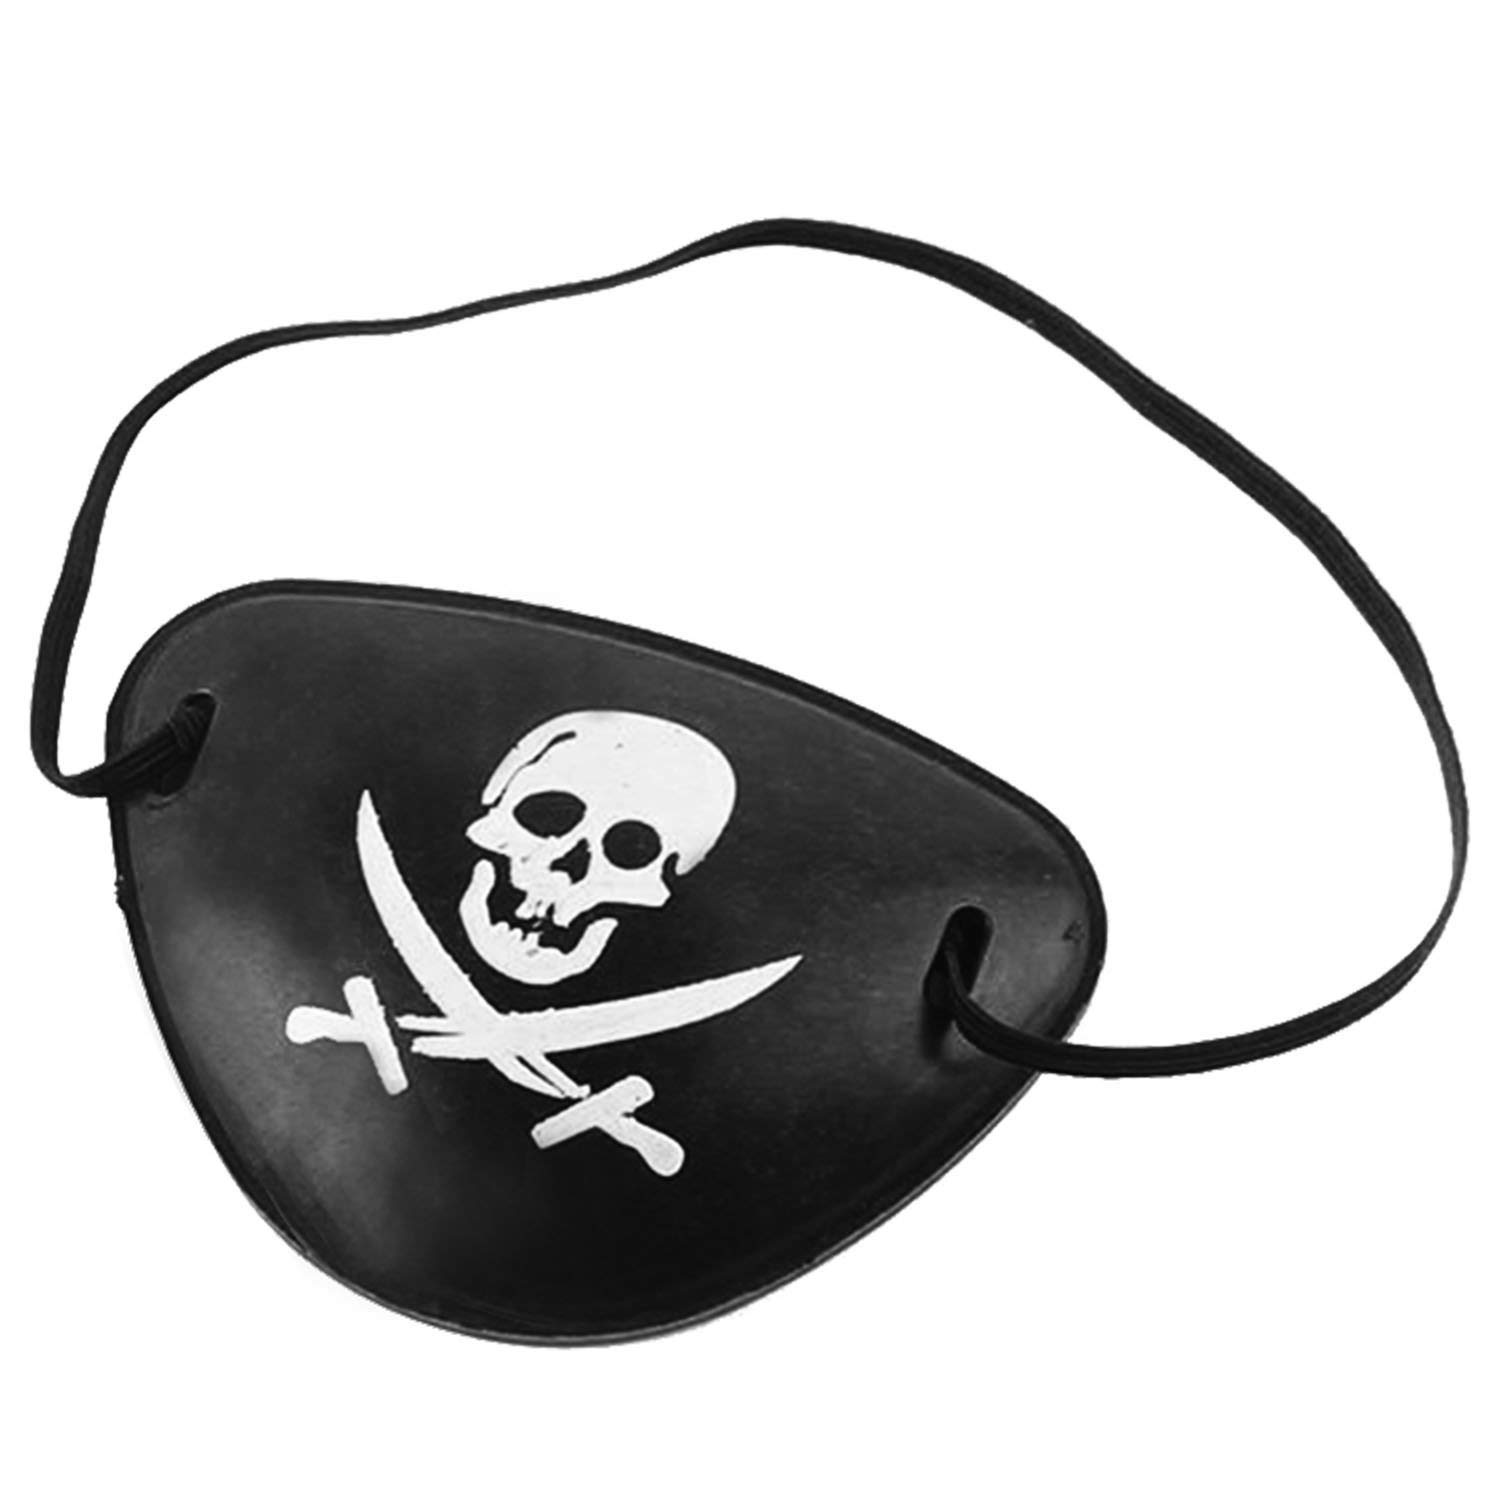 12 Pirate Rubber Eye Patches Pirate Halloween Party Favor